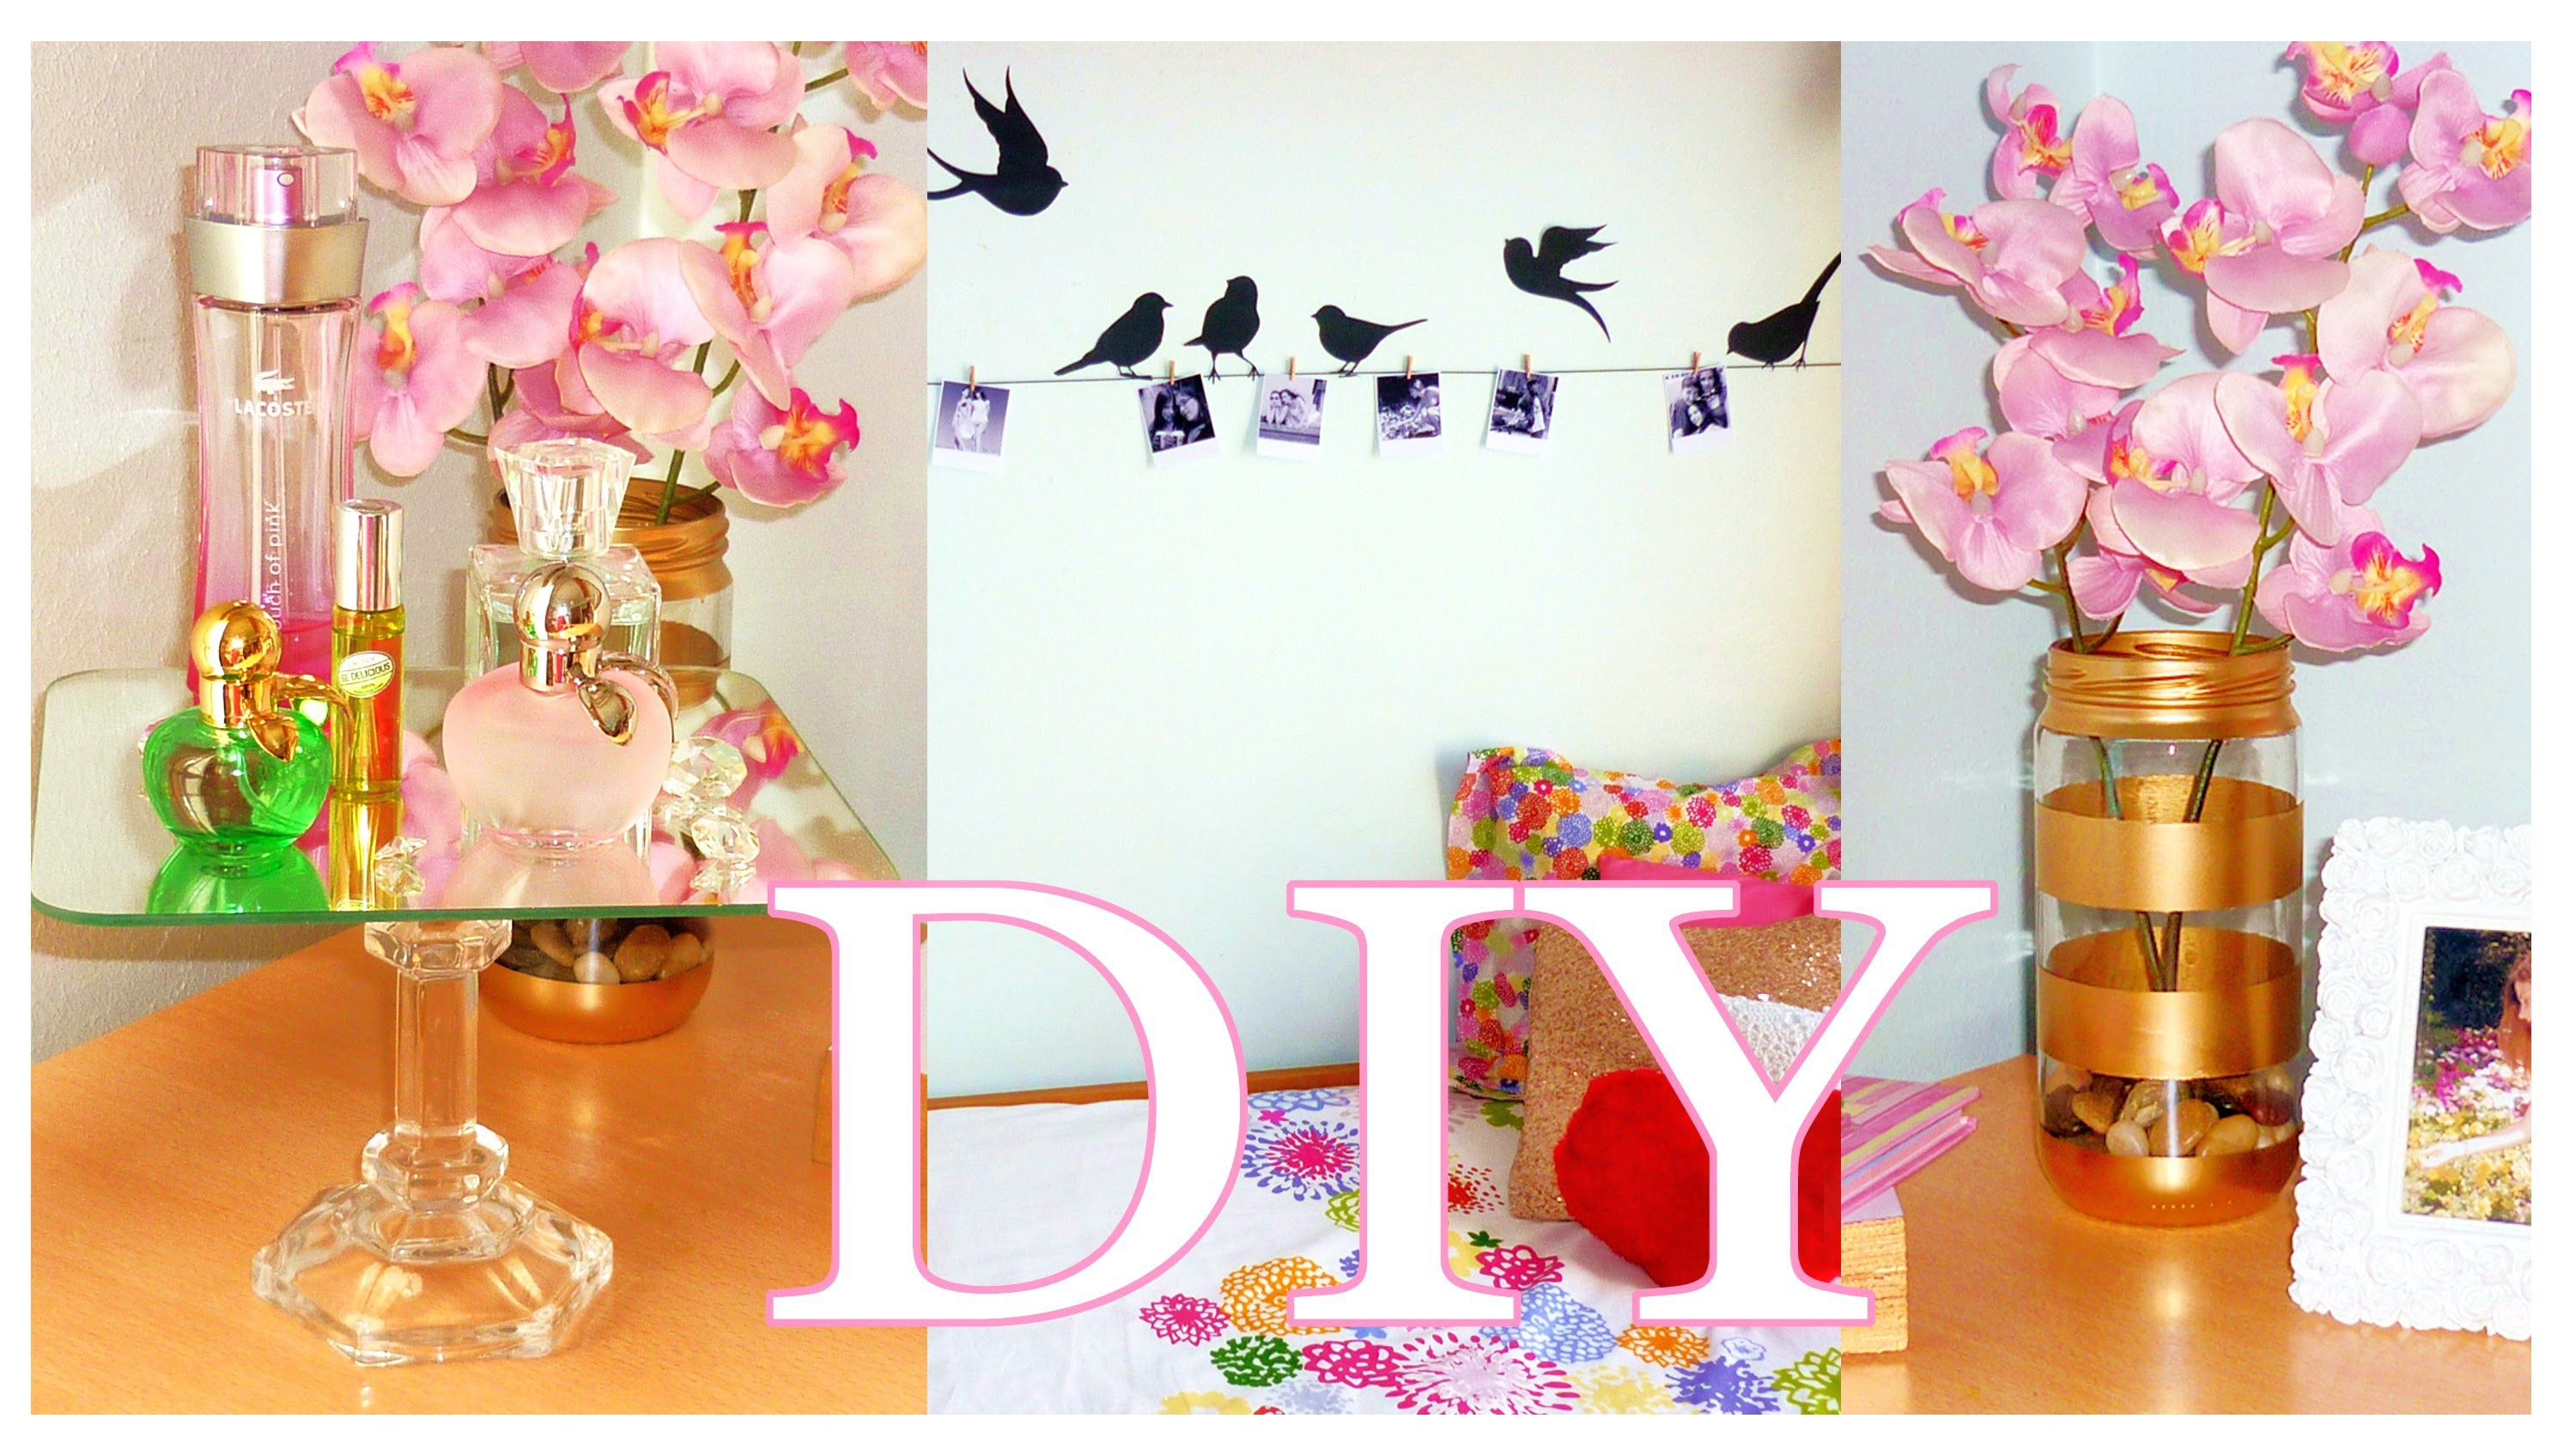 DIY ROOM DECOR ❤ Cheap & cute projects | LOW COST ideas!!